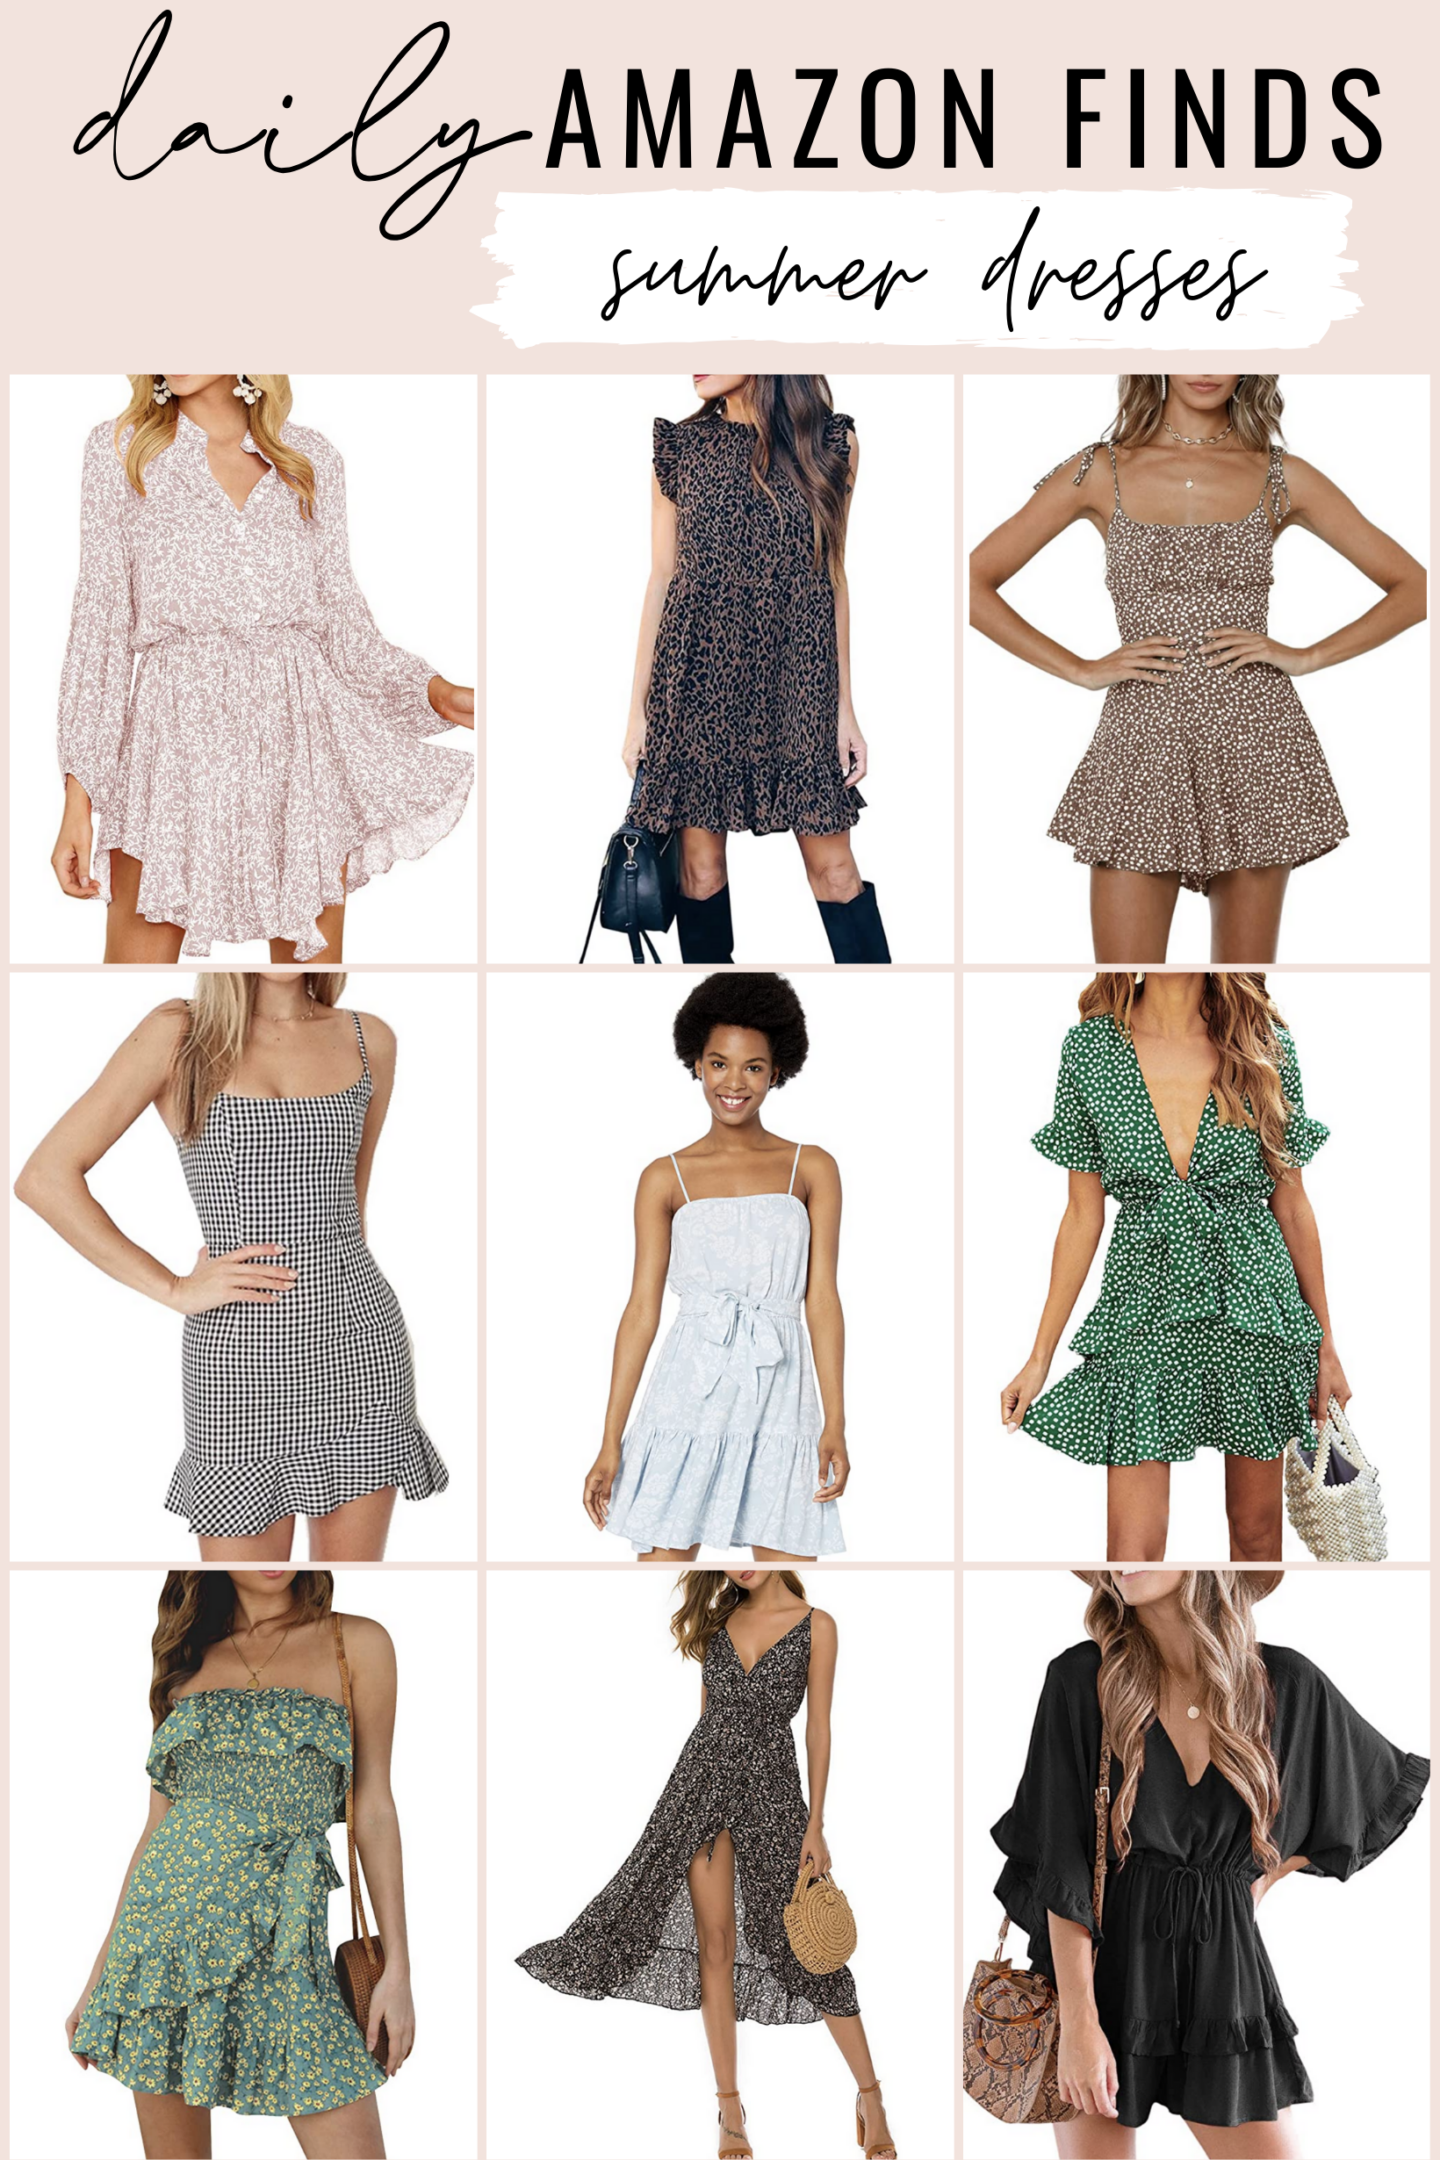 Daily Amazon Finds 5 24 20 Amazon Summer Dresses In 2020 Summer Dresses Dresses Cute Dresses